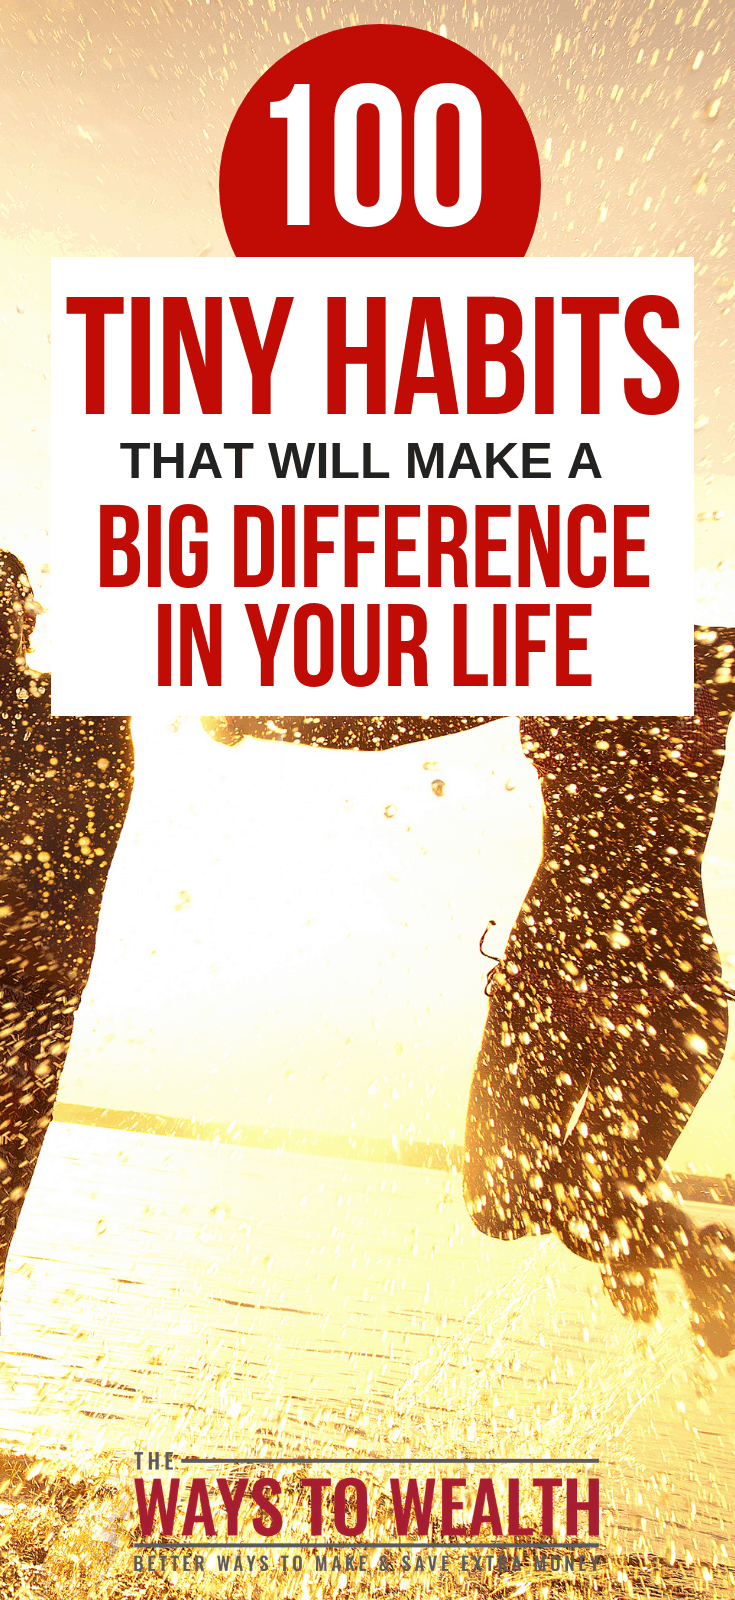 100 Tiny Habits From Successful People That Make A Big Difference In Your Health, Wealth, & Happiness.Check out this ultimate list of 100 good habits that will make a big difference.#habits #goalsetting